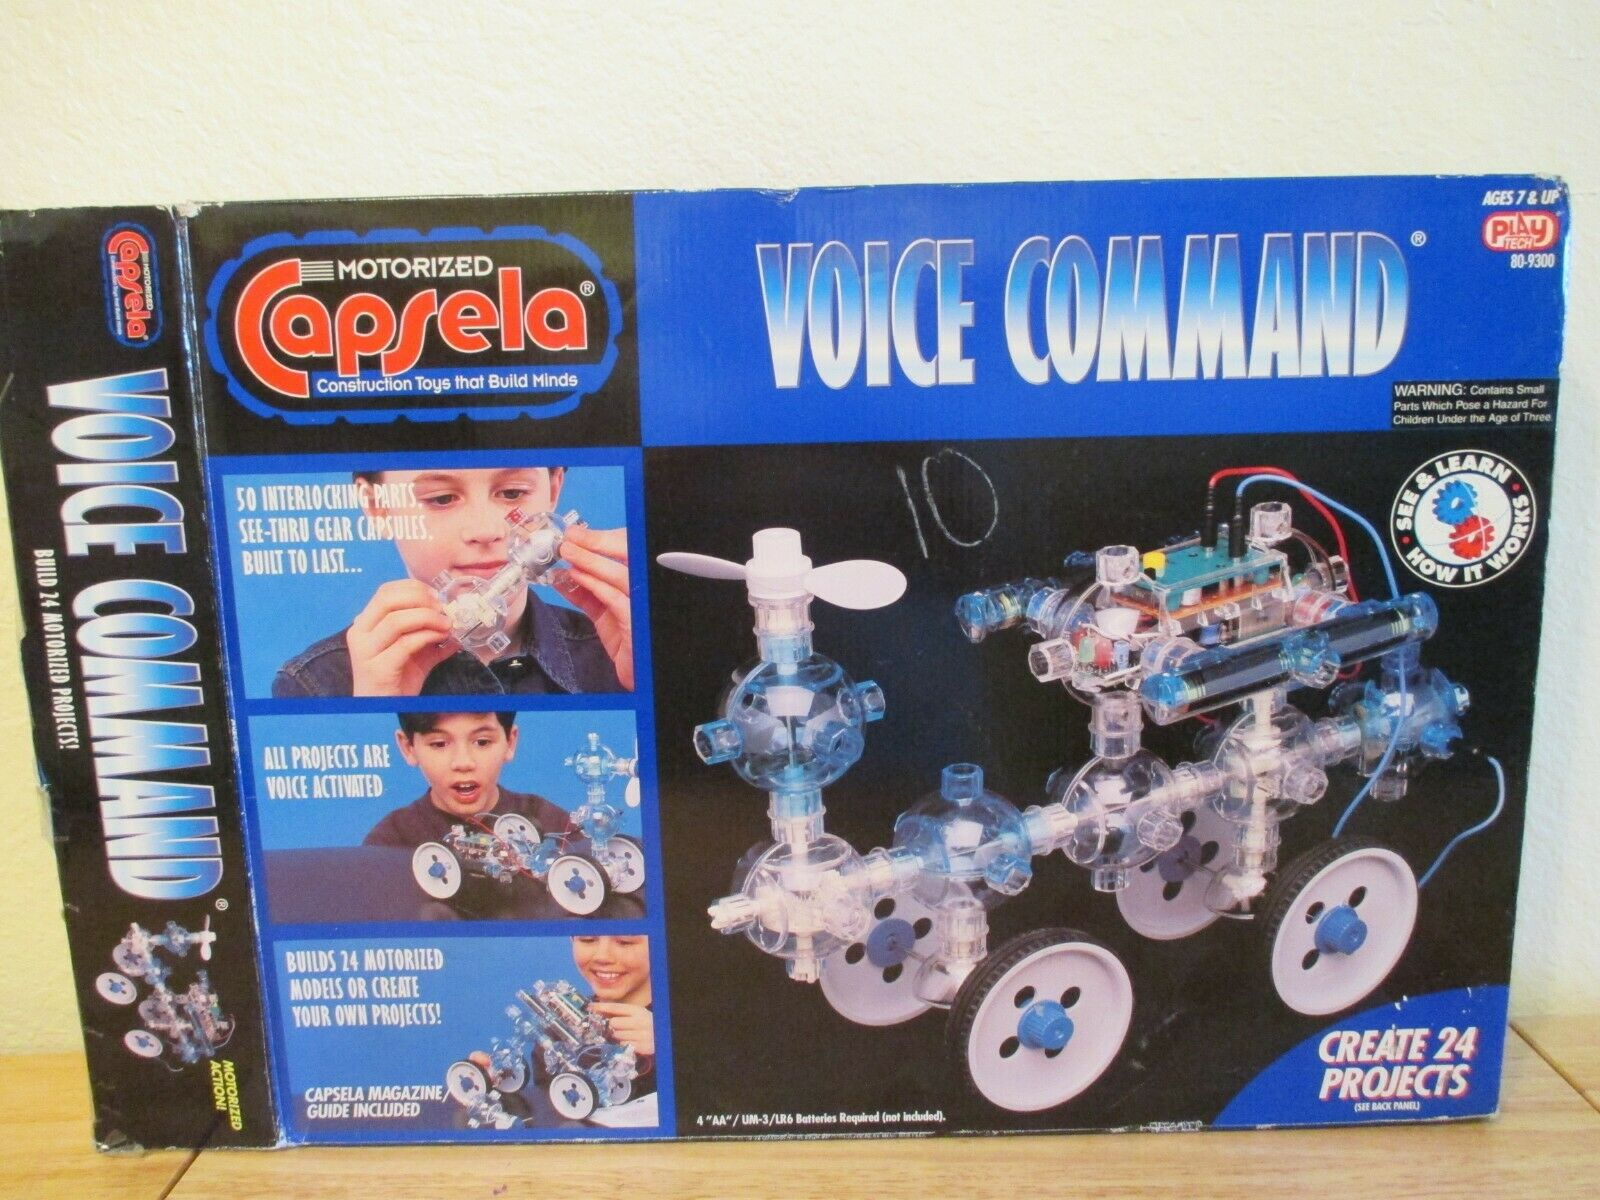 CAPSELA MOTORIZED VOICE COMMAND 3000 WITH Manuals and Cassette